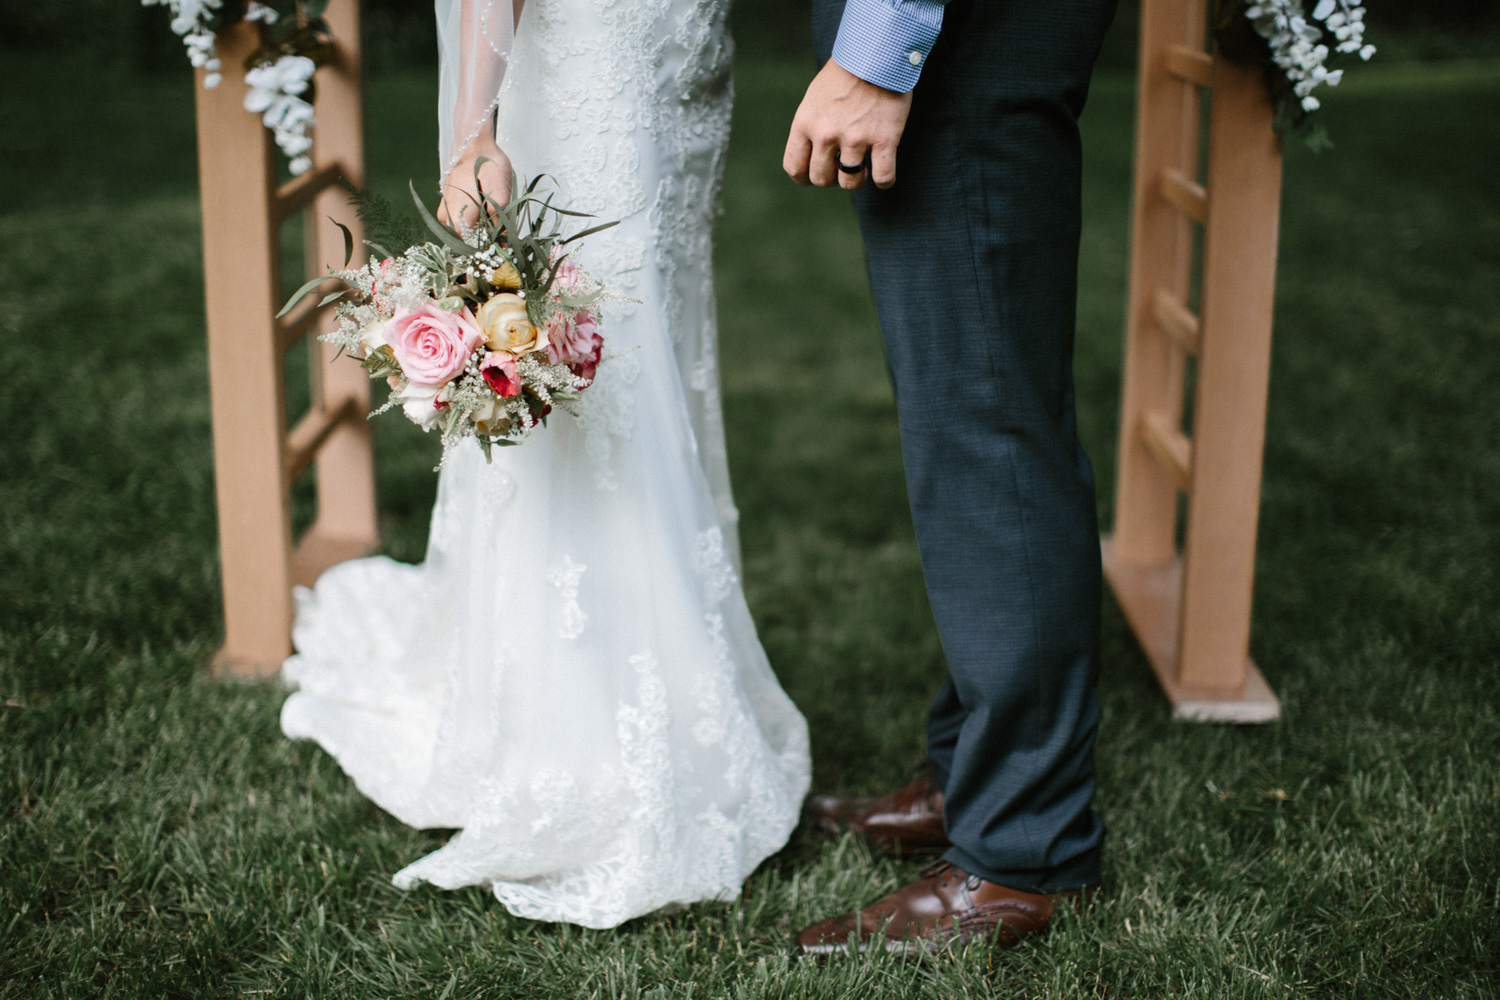 Outdoor_Wedding_SiouxFalls_MaryJoWegnerArboretum_Photographer_Calli&Jon_106.jpg